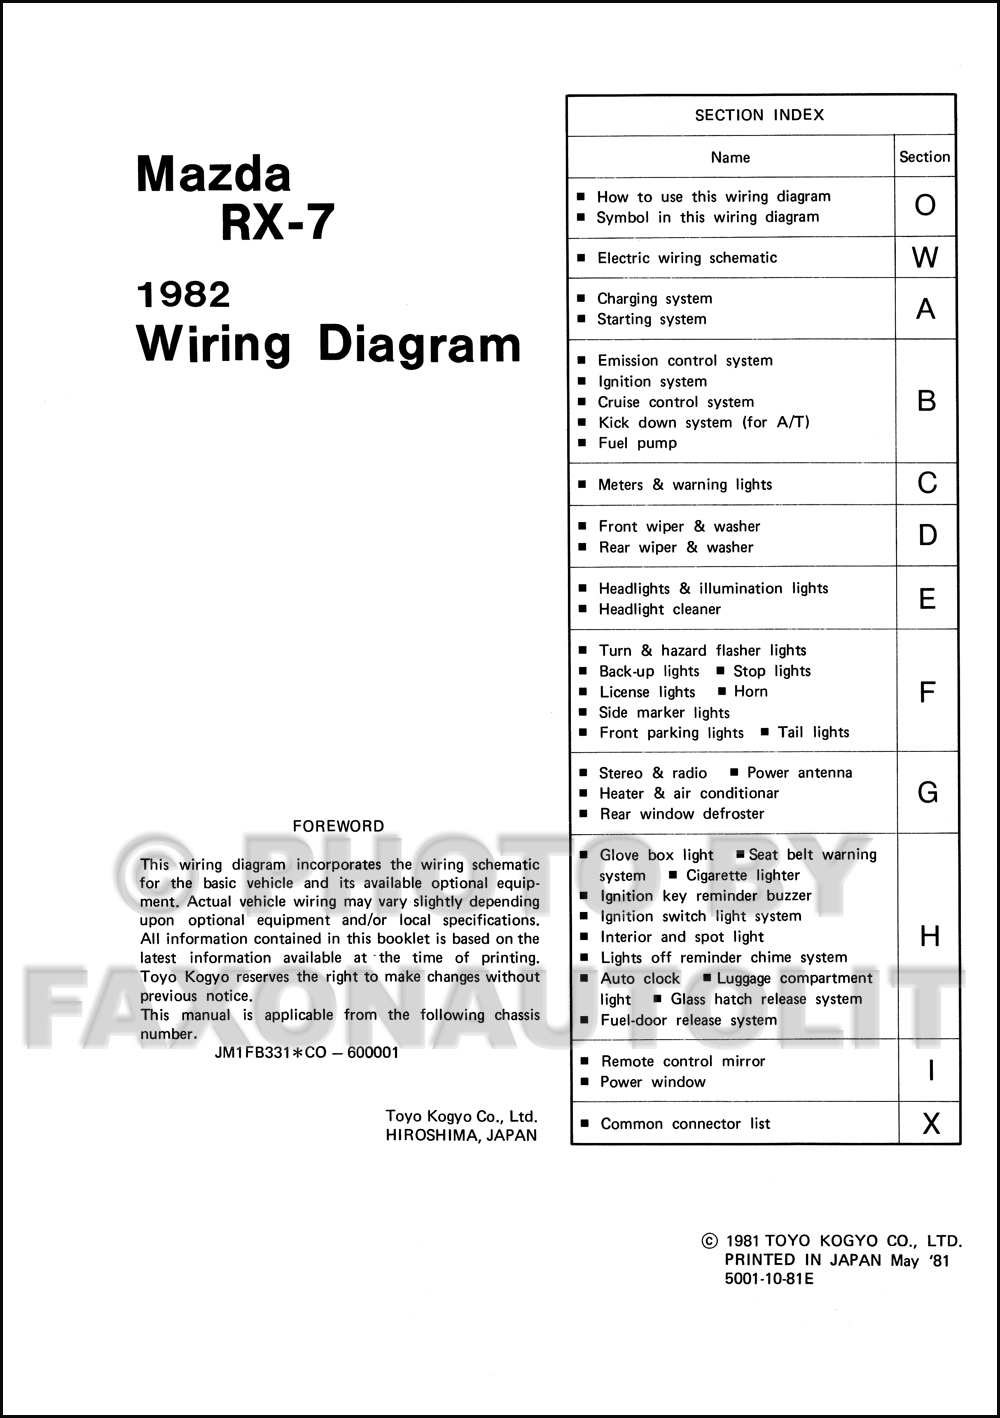 Mazda Rx 7 Wiring Schematic Library Cbb61 Fan Capacitor Diagram 1982 Manual Original Rx7 Click On Thumbnail To Zoom